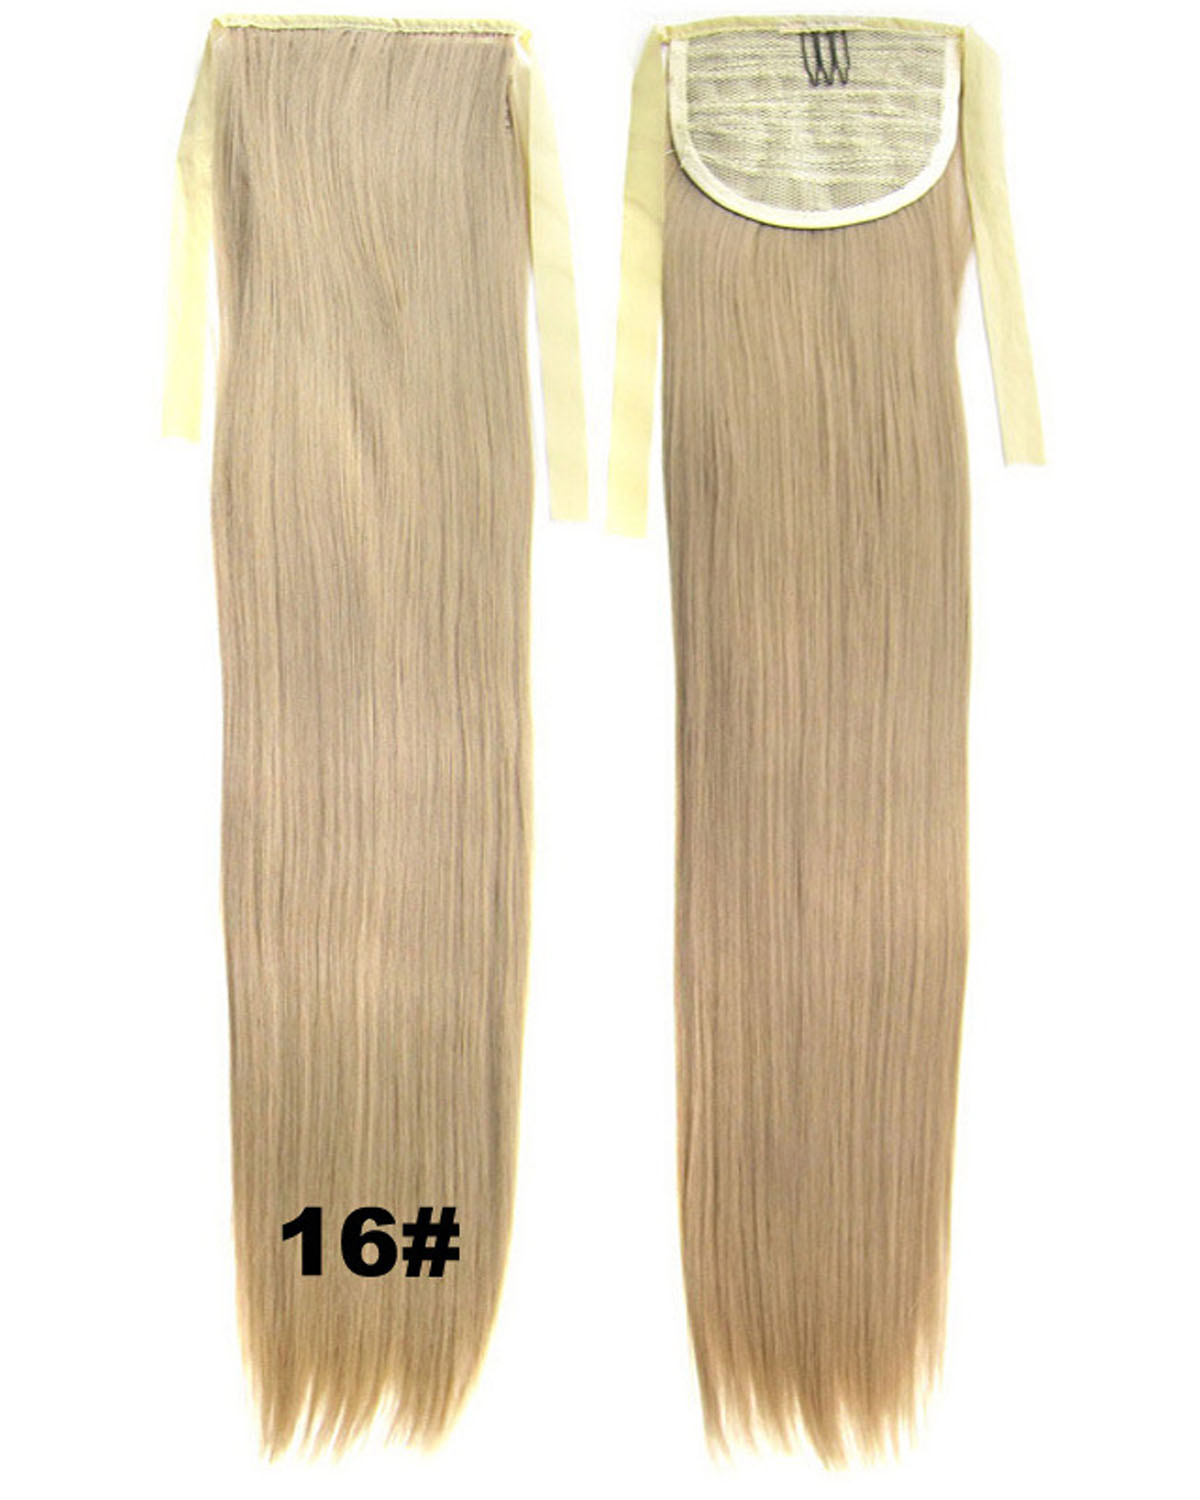 22 Inch Lady Fashional Straight and Long Lace/Ribbon Synthetic Hair Ponytail  16# Hot-sale